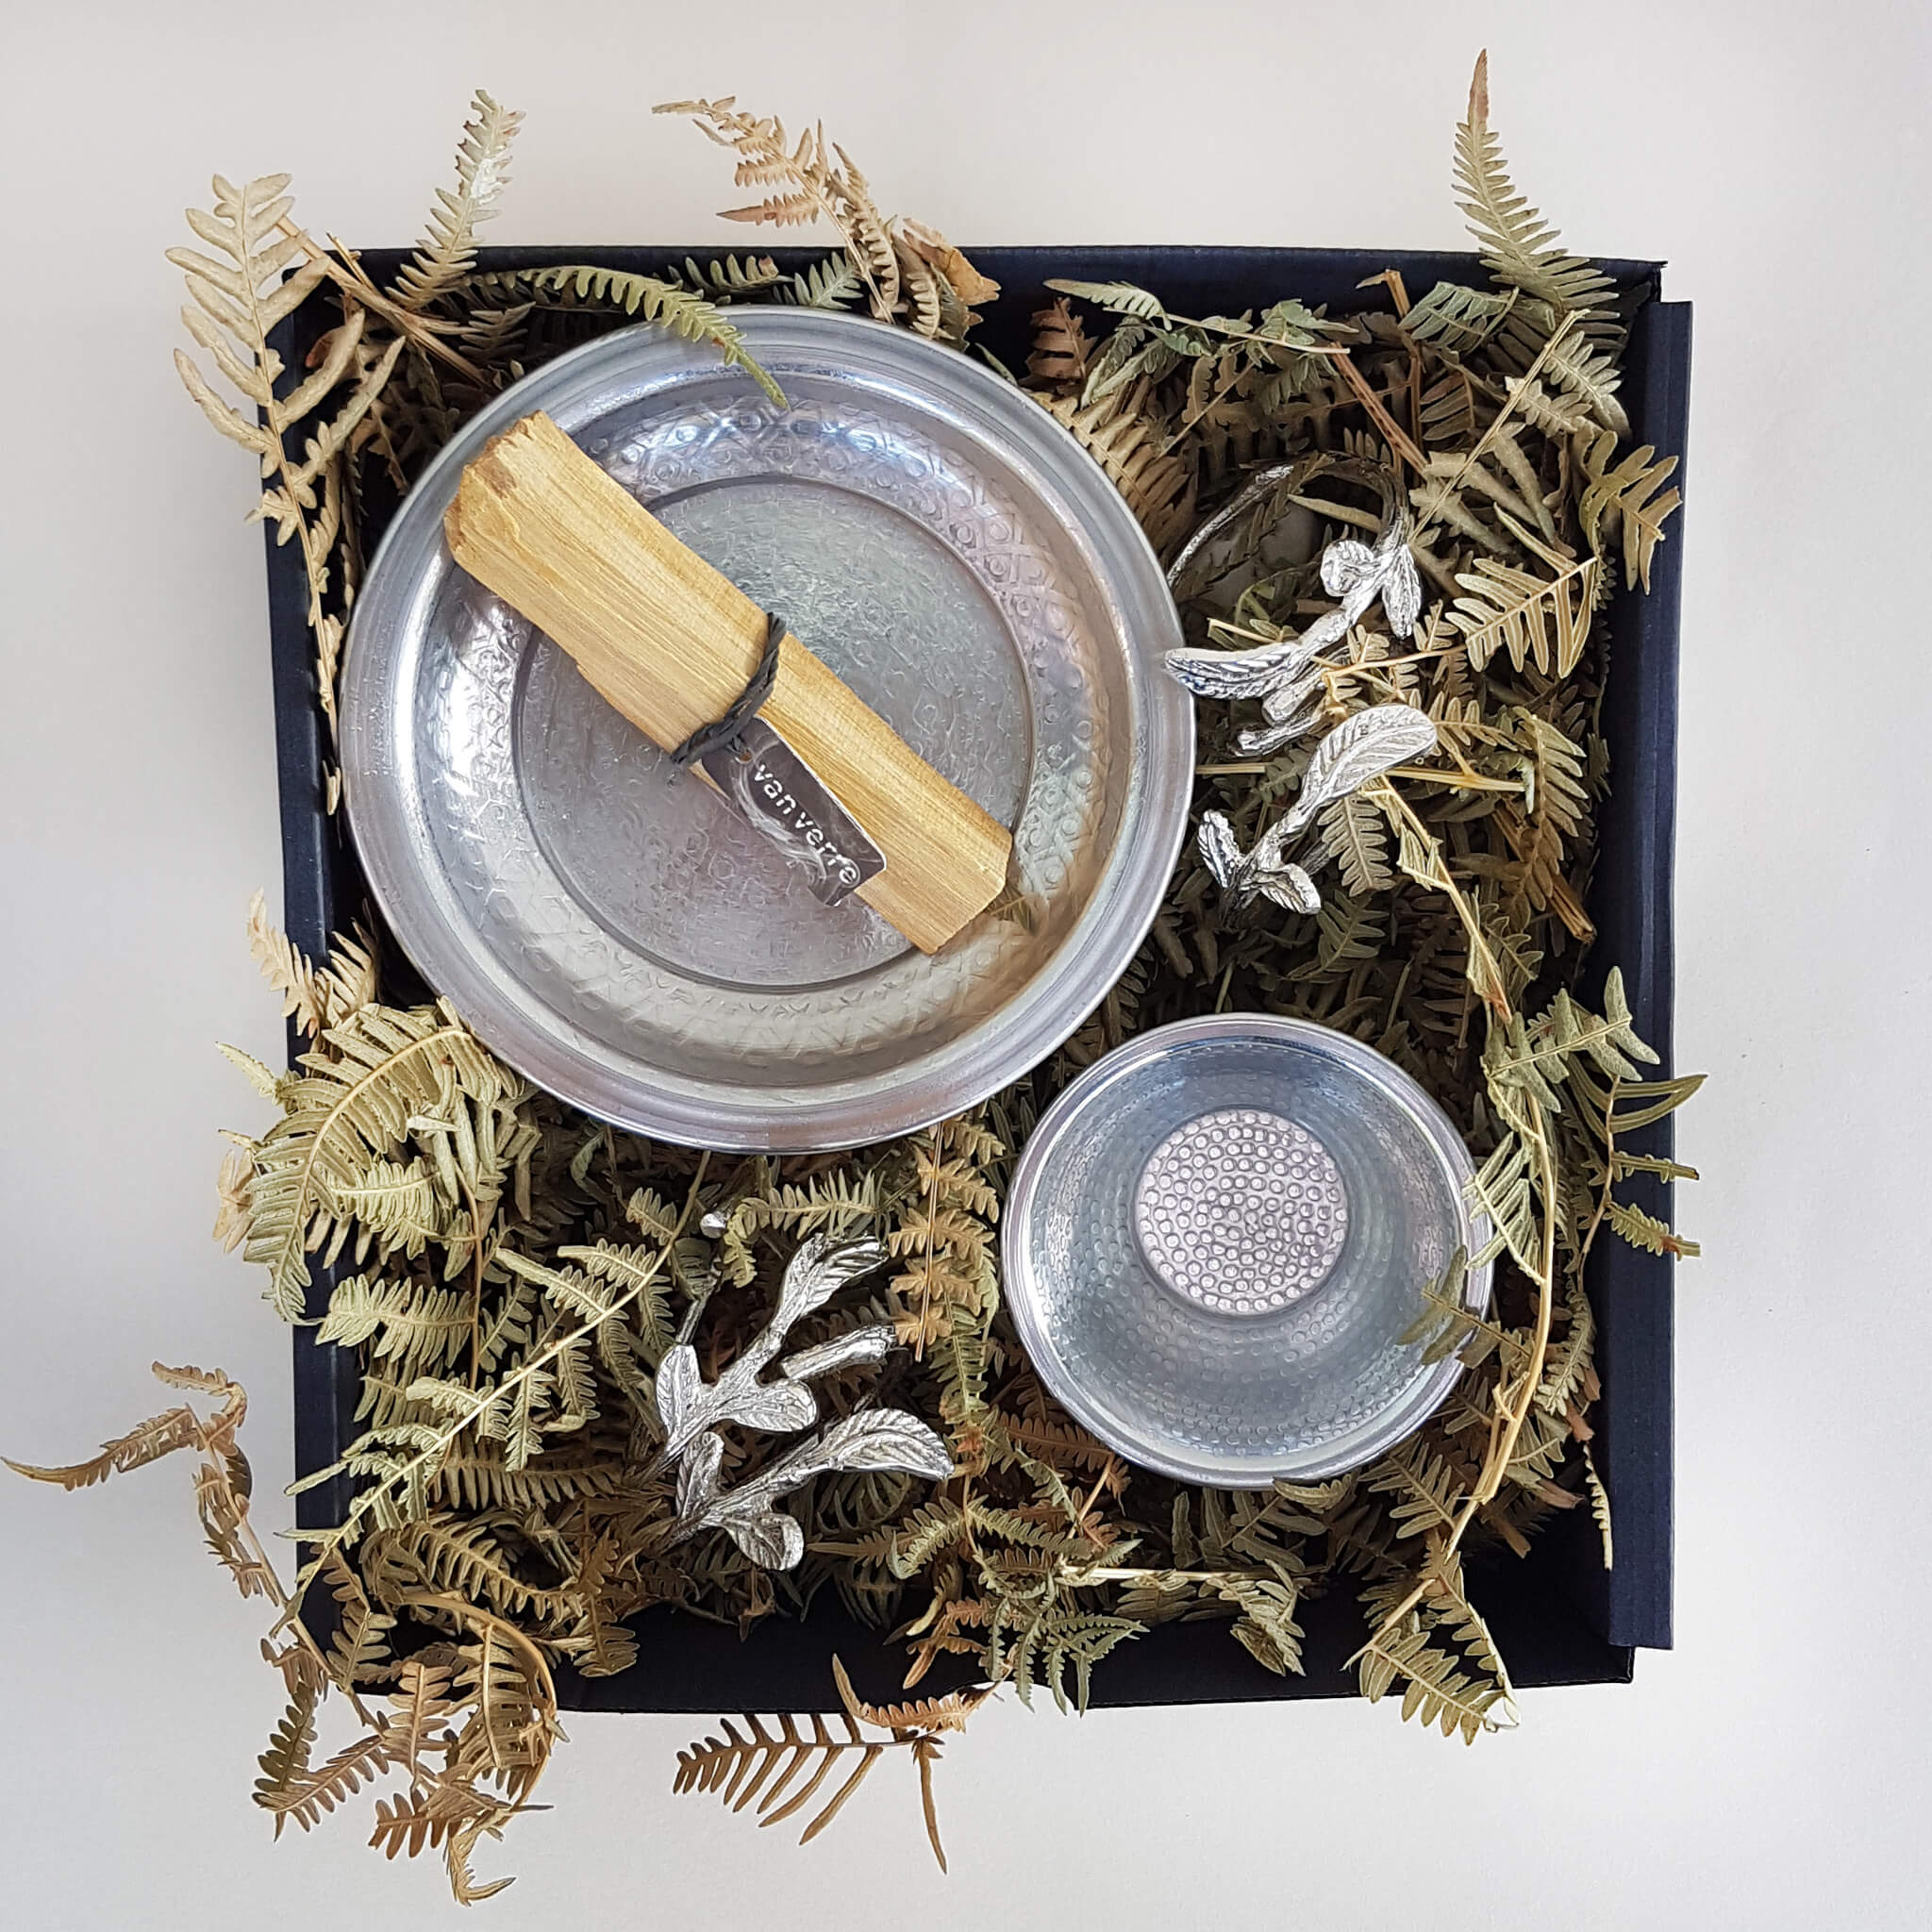 Dining with Silver Lining - Gift Box - Unik by Nature